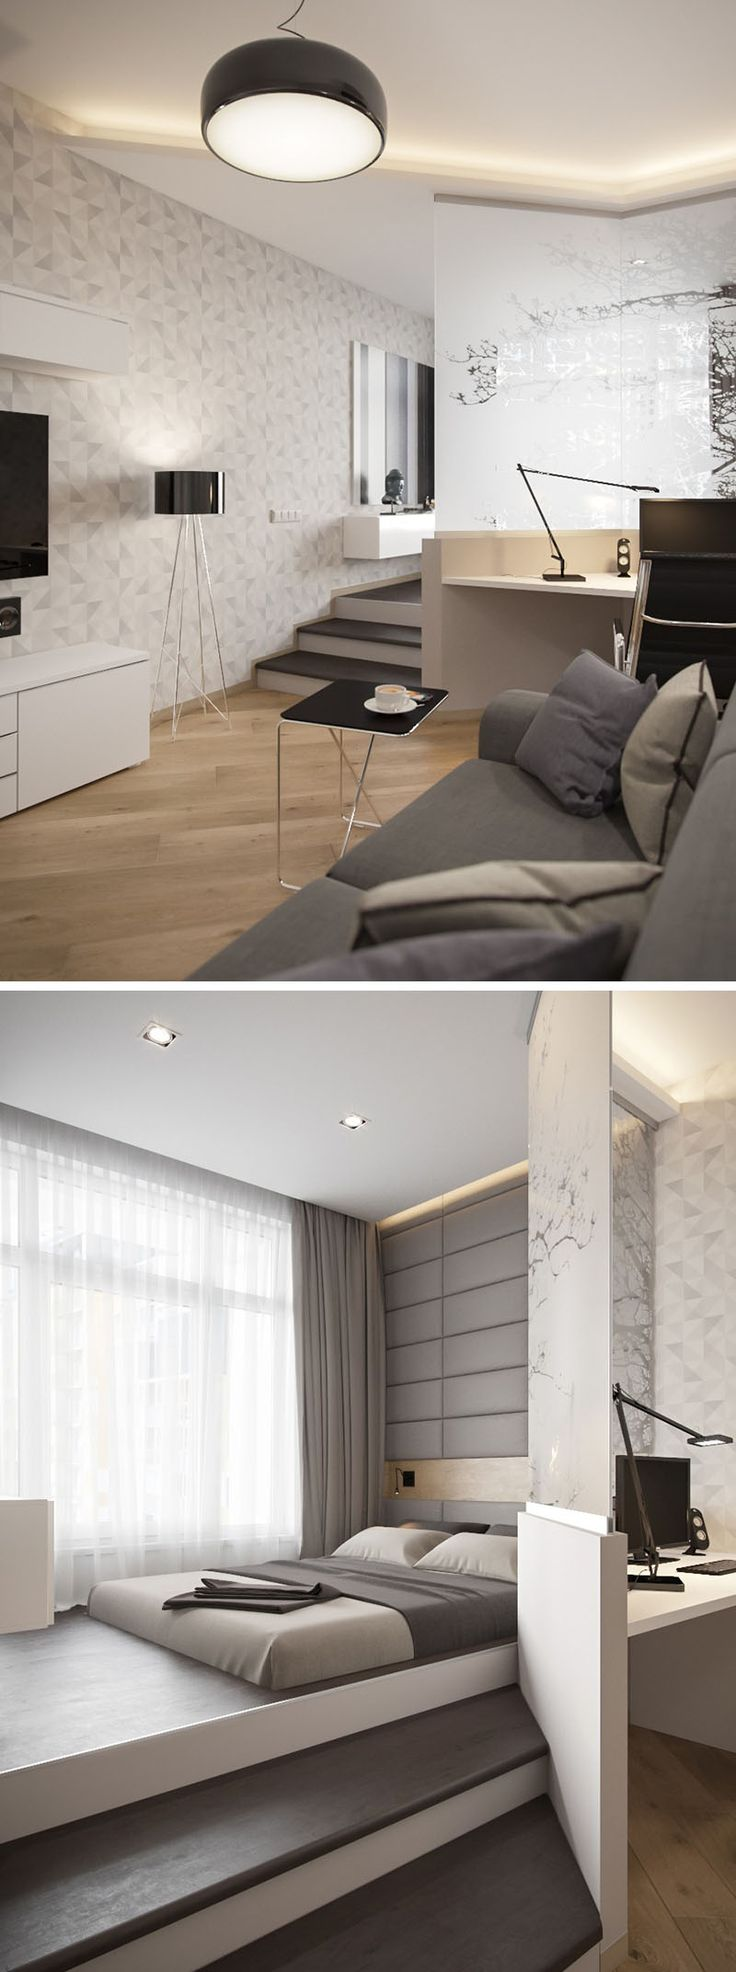 BEDROOM DESIGN IDEA - If you have a living area and bedroom sharing the same space, raise the bed up onto a platform and create a partial…